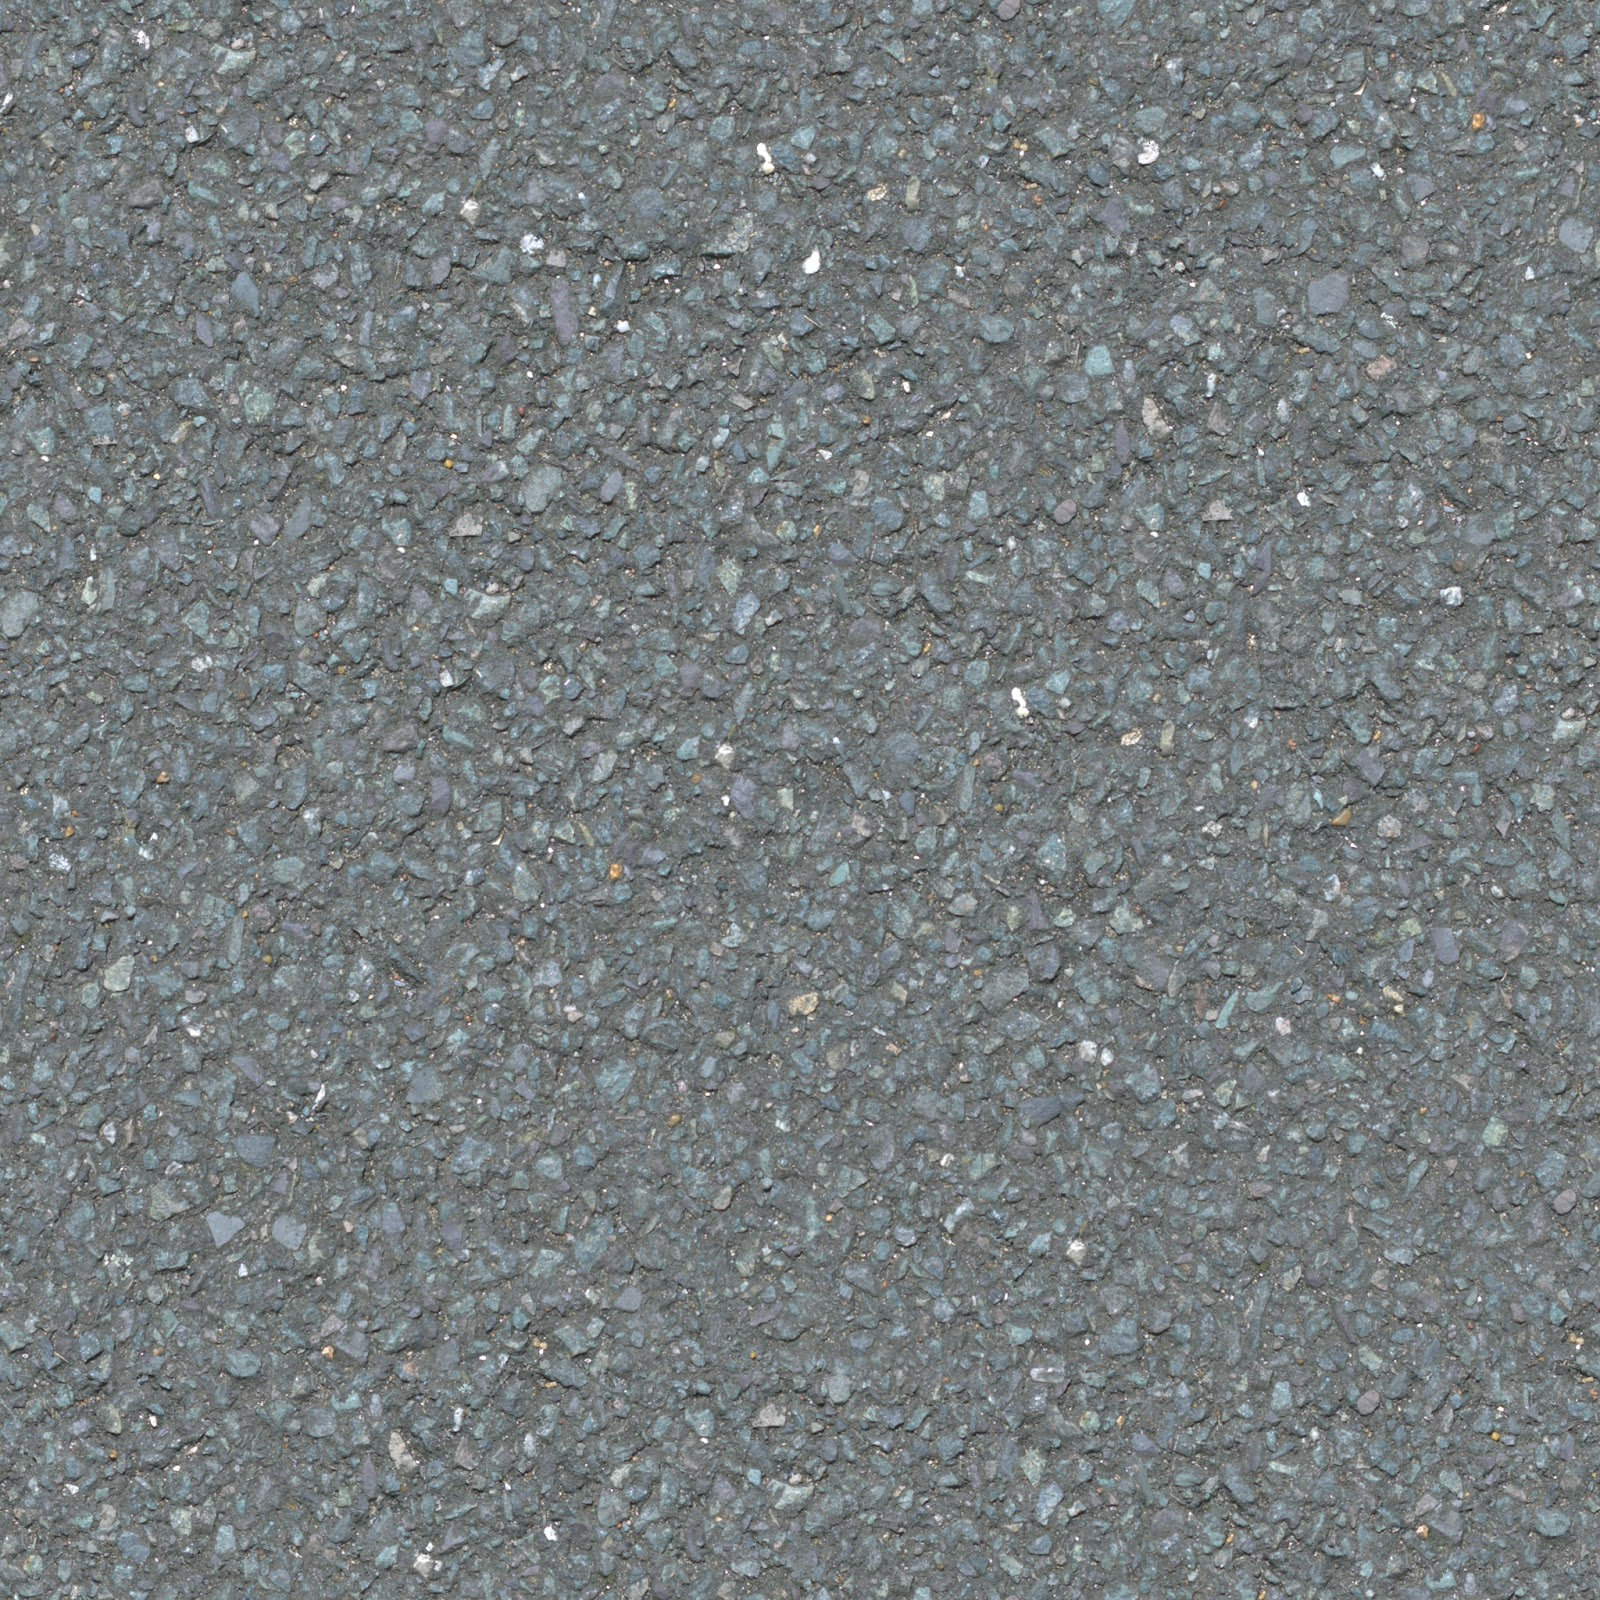 High Resolution Textures Asphalt